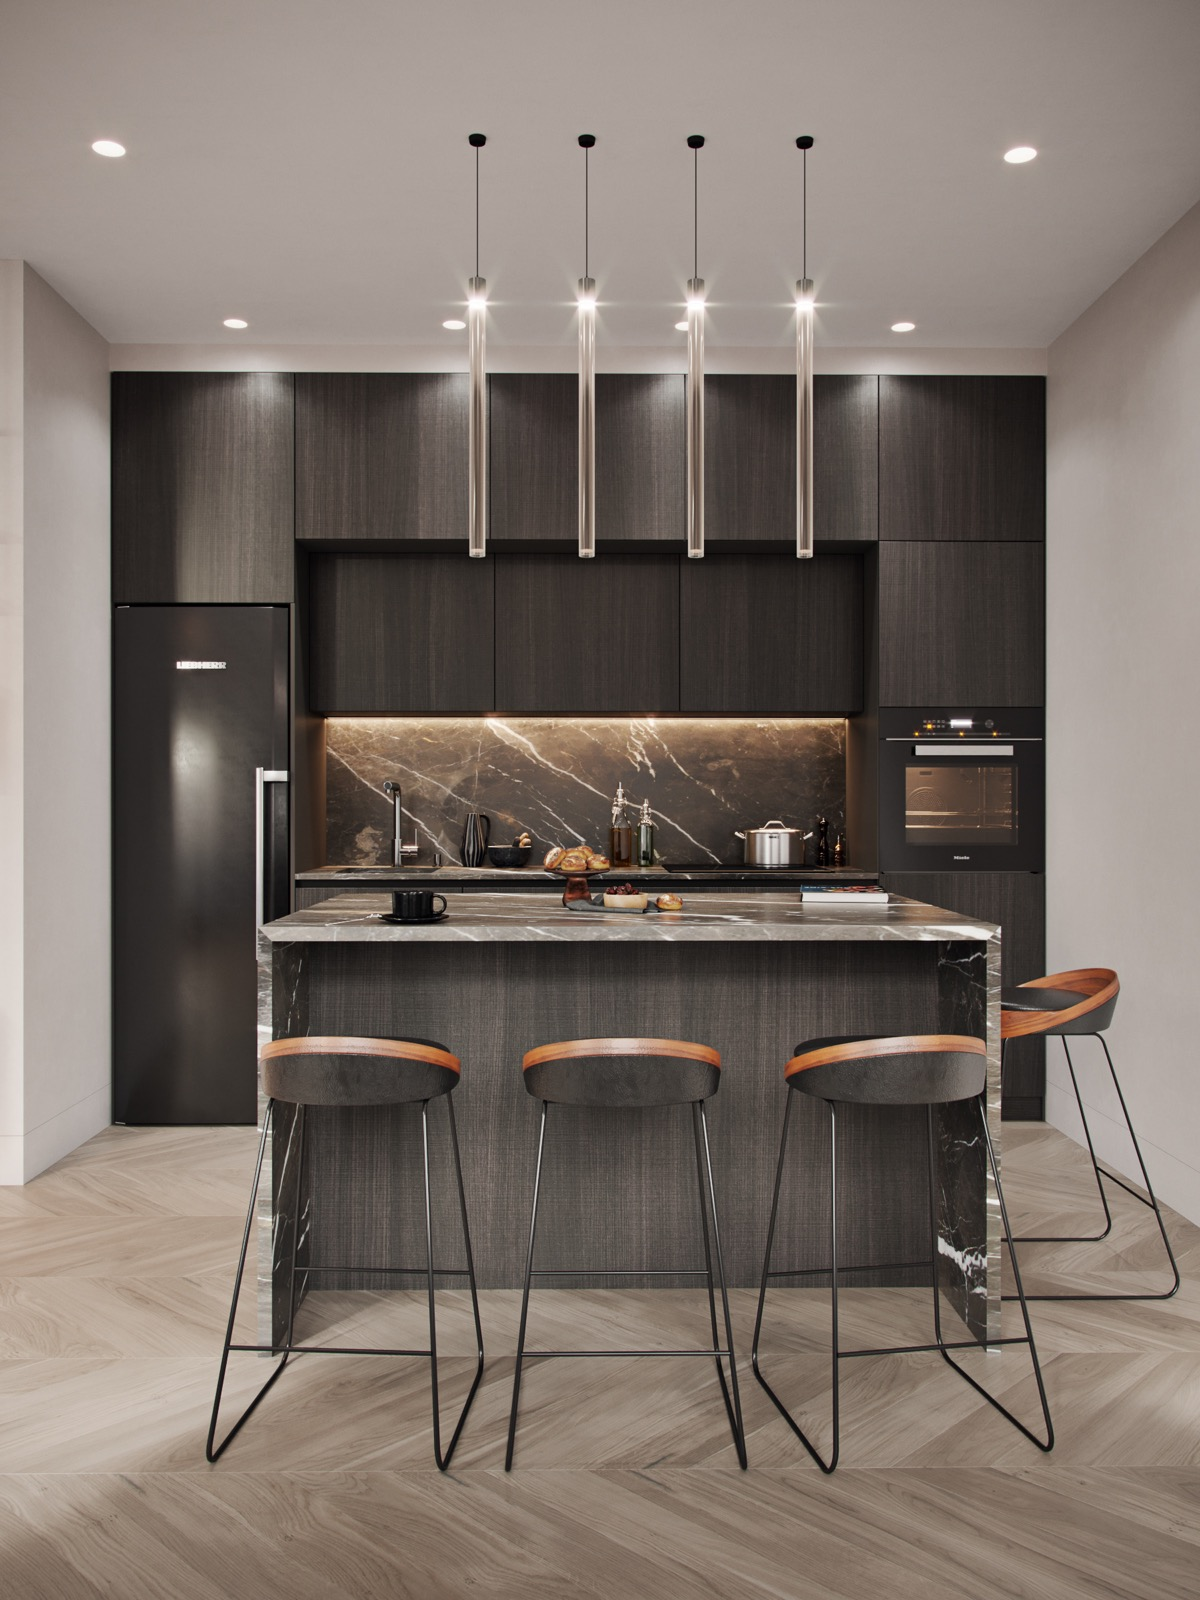 51 Luxury Kitchens And Tips To Help You Design And ... on Ultra Modern Luxury Modern Kitchen Designs  id=36829